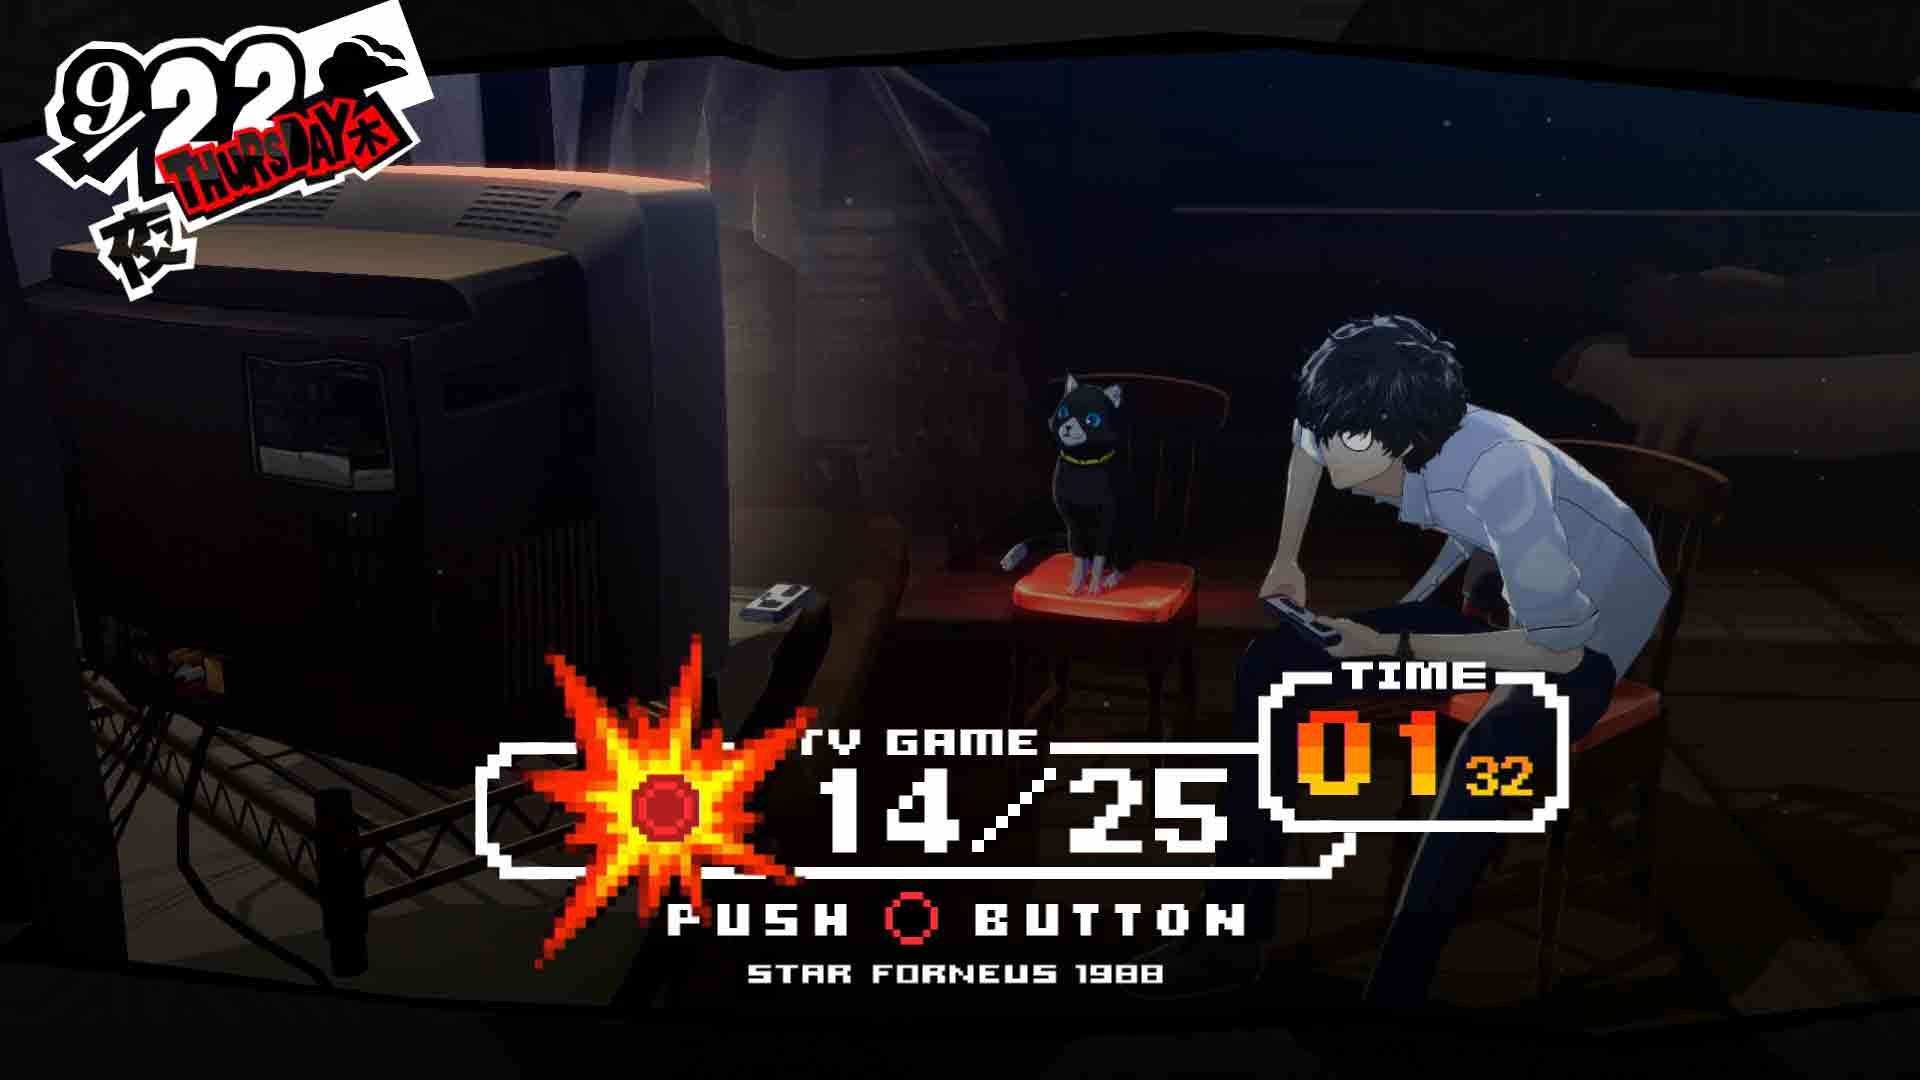 View Persona 5 Game Over Background